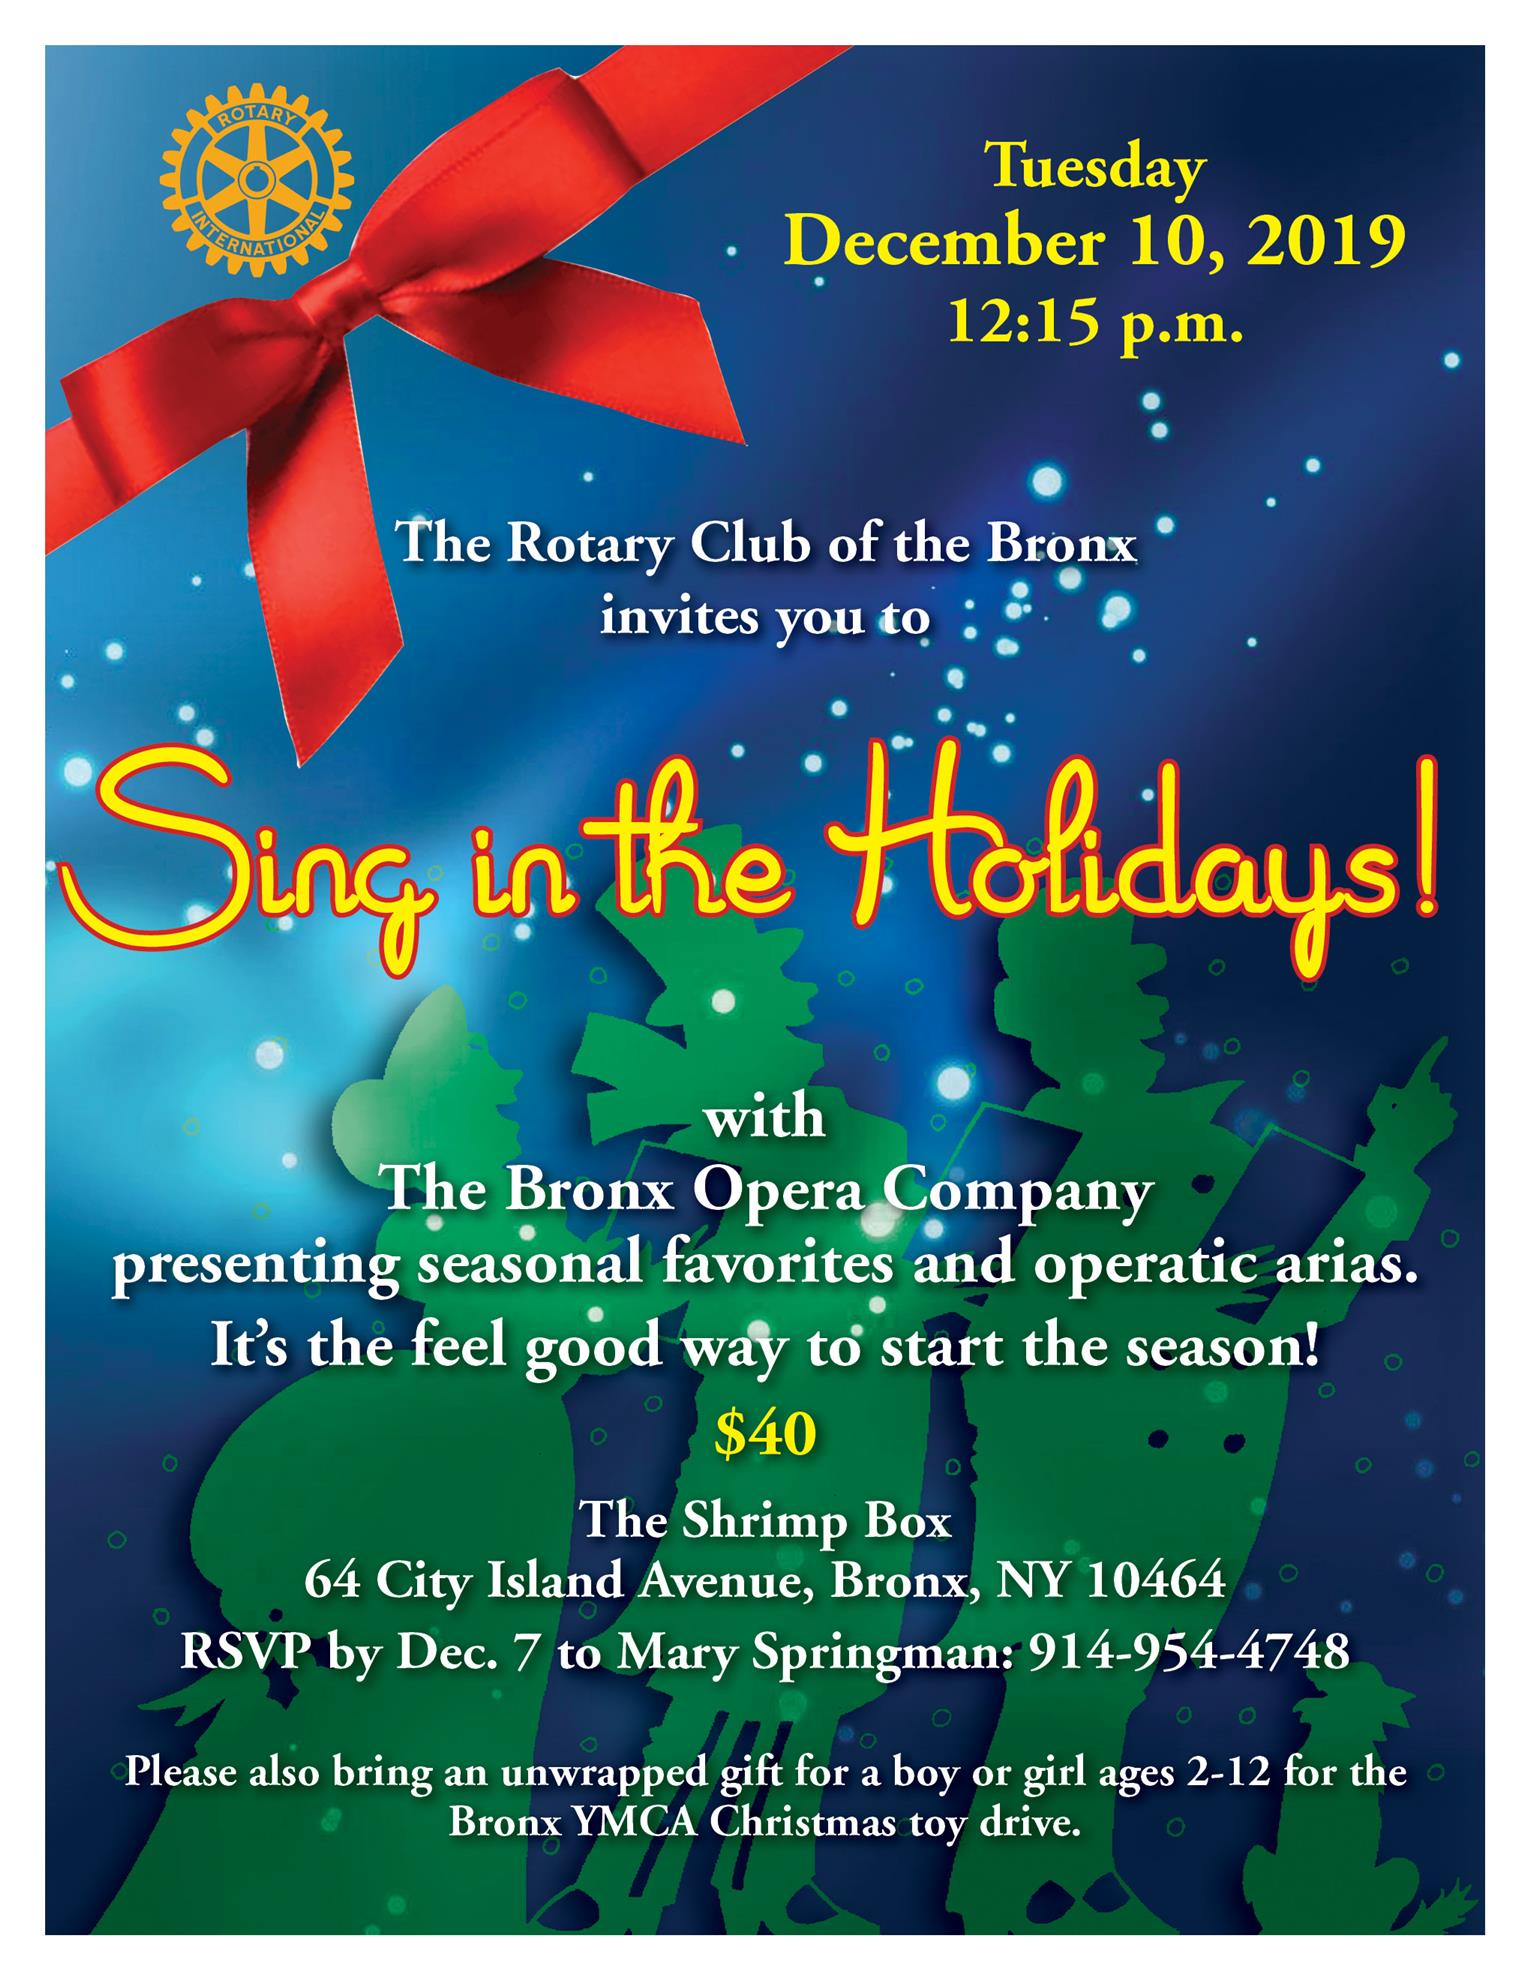 Holiday party at Bronx Rotary with Bronx Opera Co.